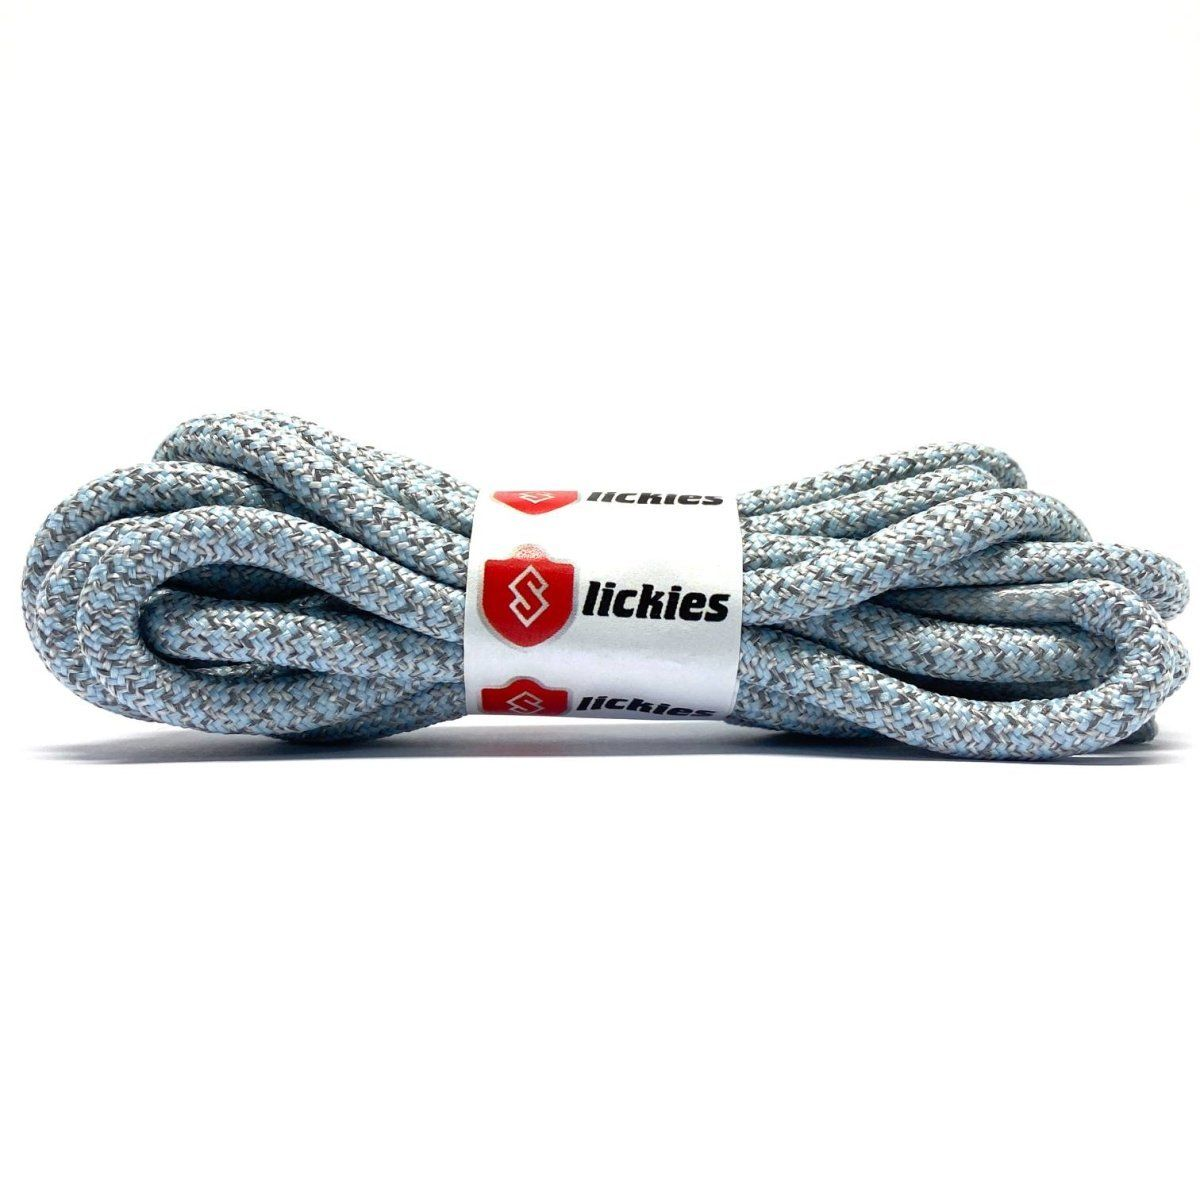 3M Rope - 3M Reflective Rope Laces V2 - Linen Blue For Yeezy Boost 350 V2 Linen